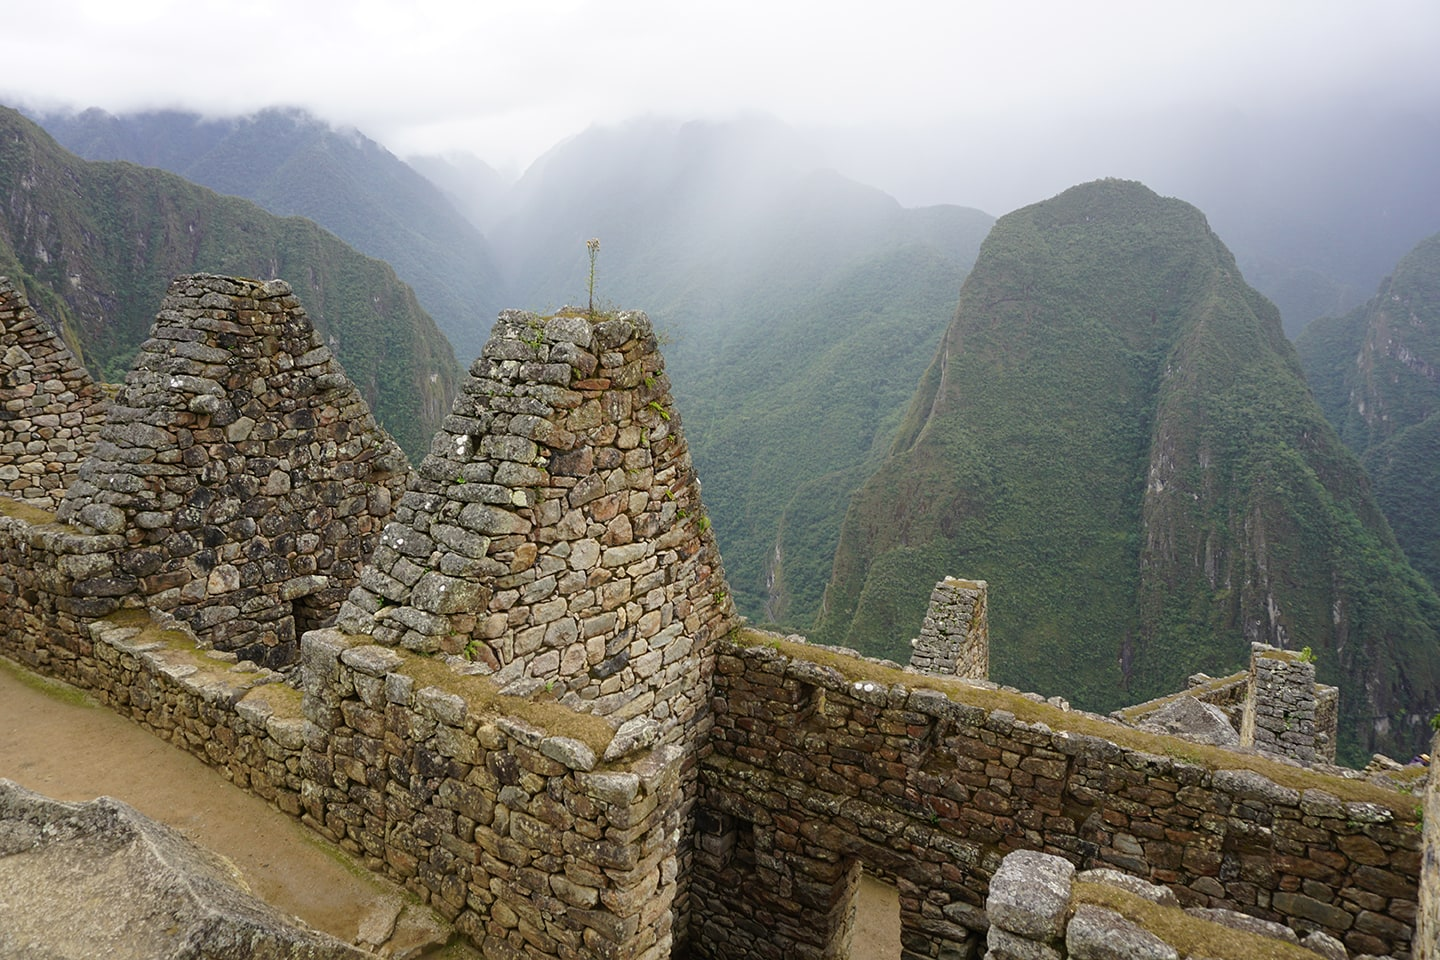 Complete gids voor Machu Picchu - looproute en highlights